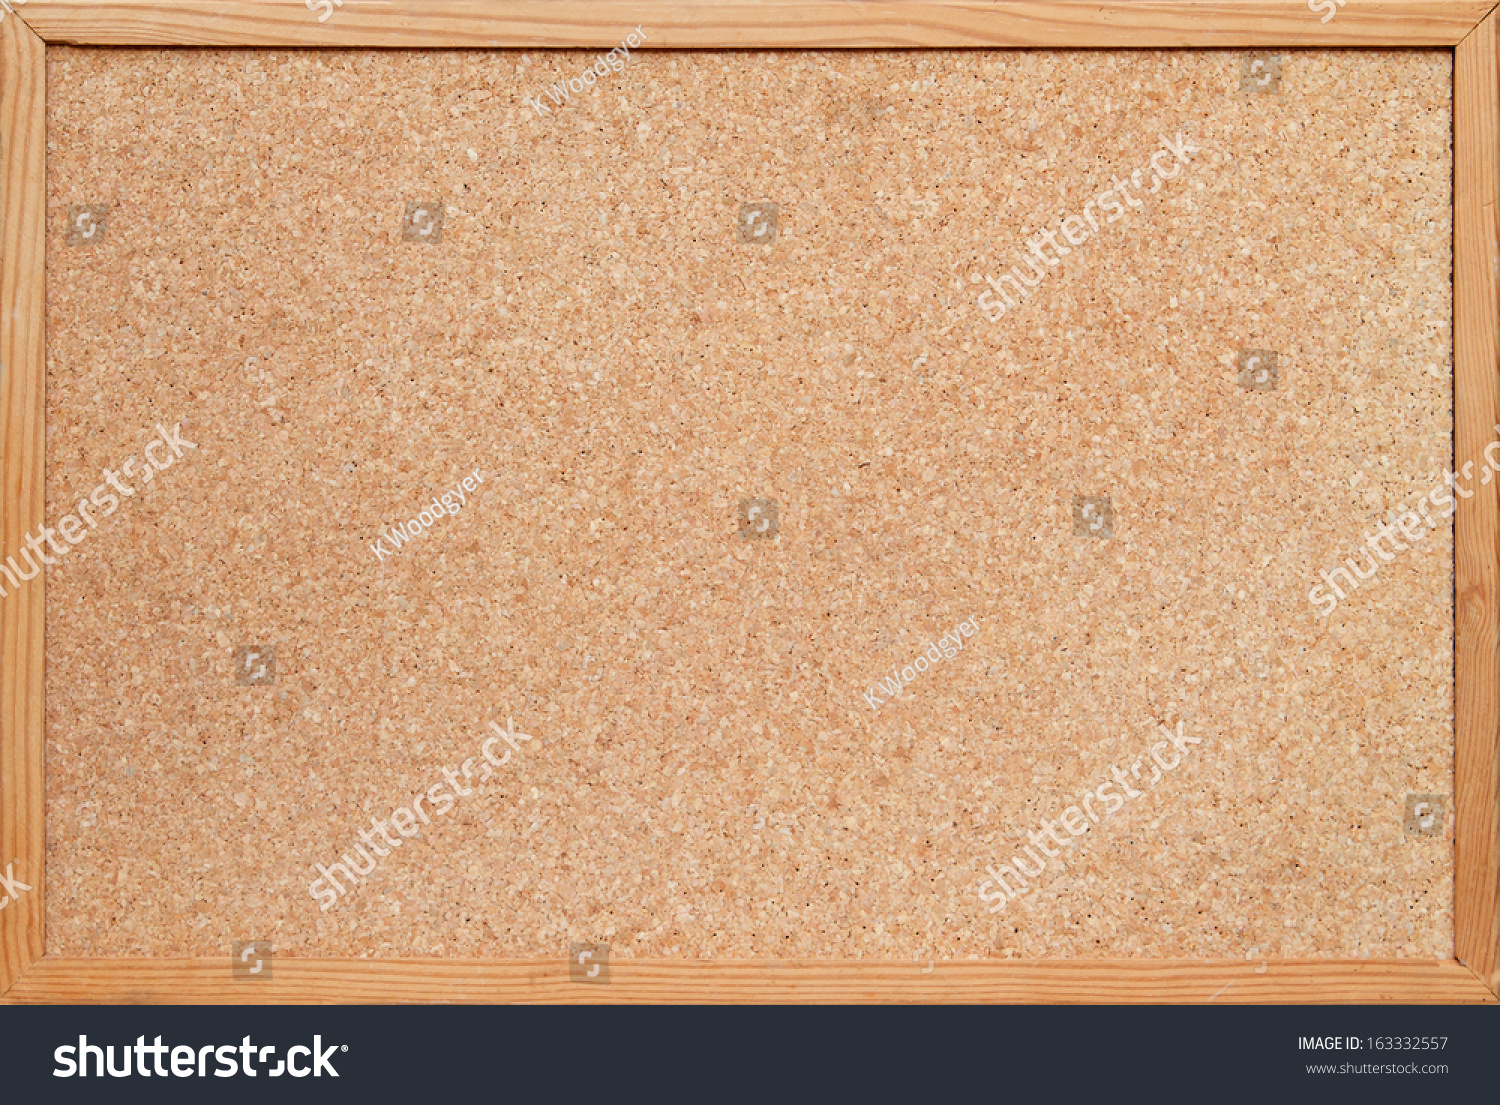 blank cork board - photo #46